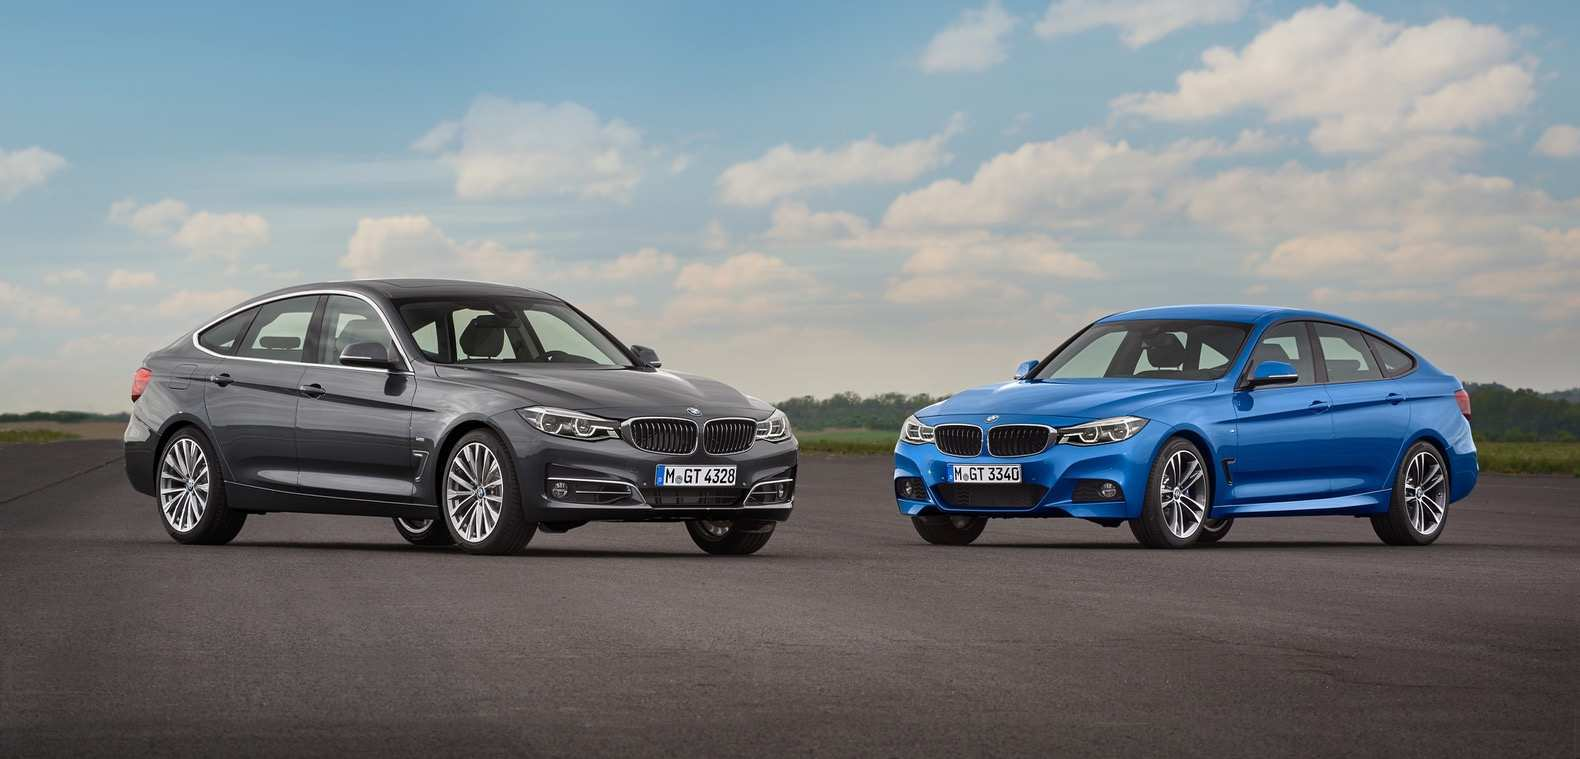 44 All New Bmw 3 Gt 2020 Pricing with Bmw 3 Gt 2020